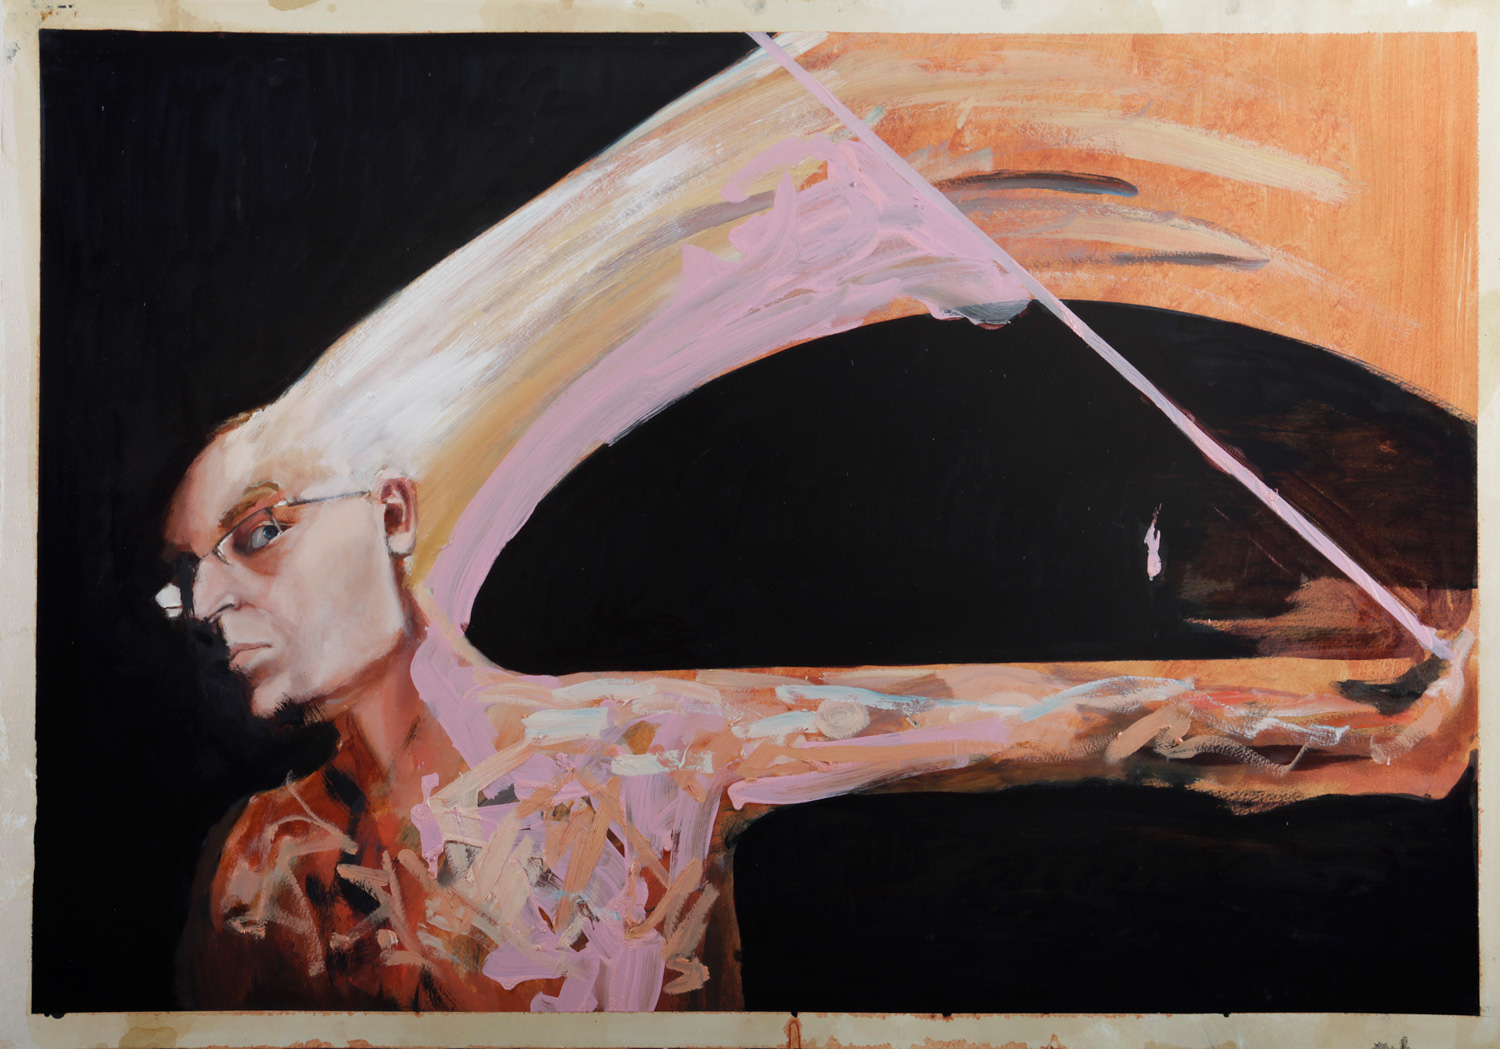 Samson, oil on paper 70x100 cm, 2013